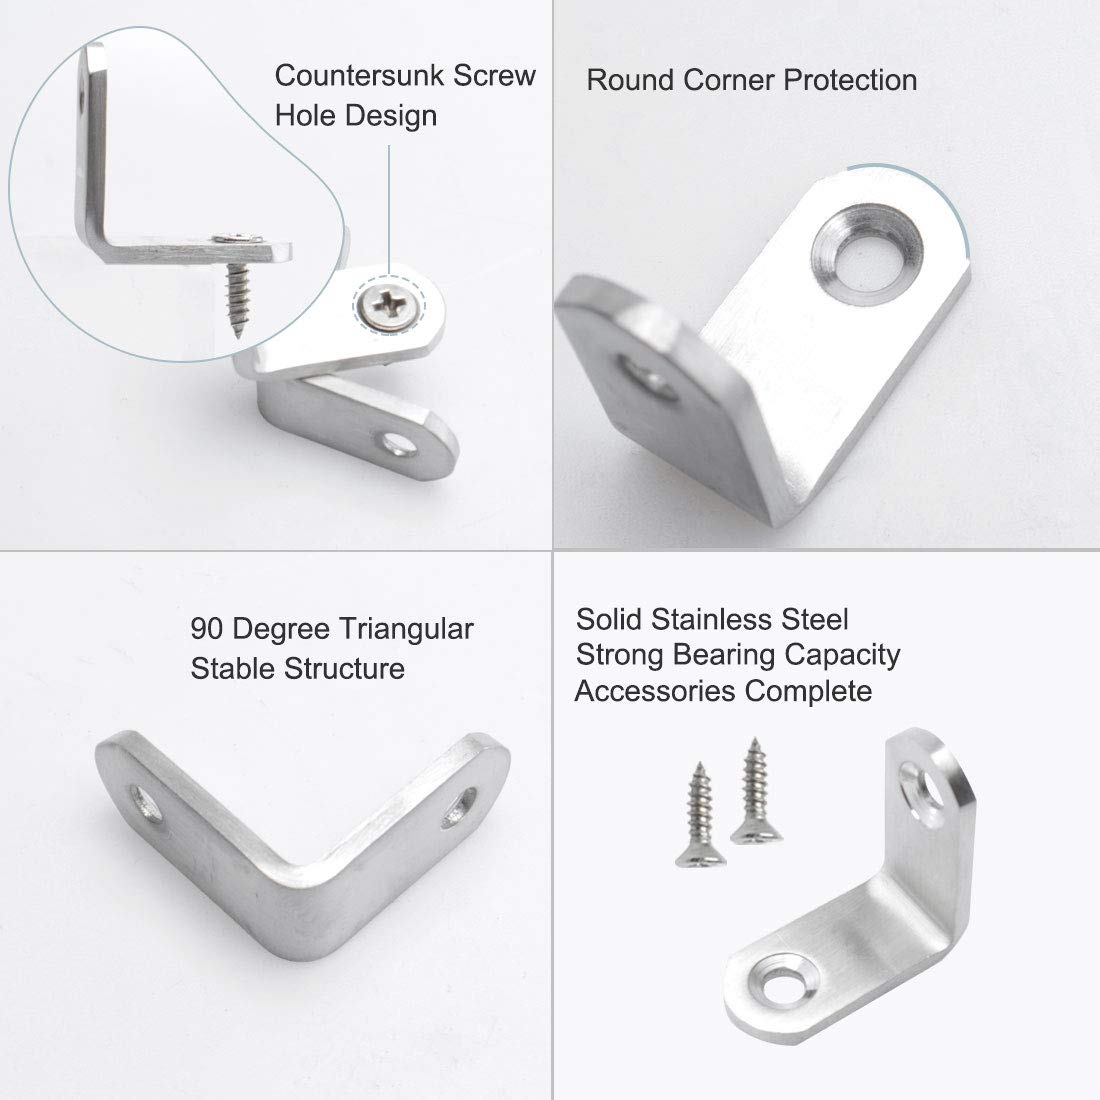 8 Pack Thicken Frame Board Support Brackets Furniture Connecting Parts with Screws for Wall Hanging Furniture Bookshelf UKCOCO Stainless Steel L Shaped Corner Brace